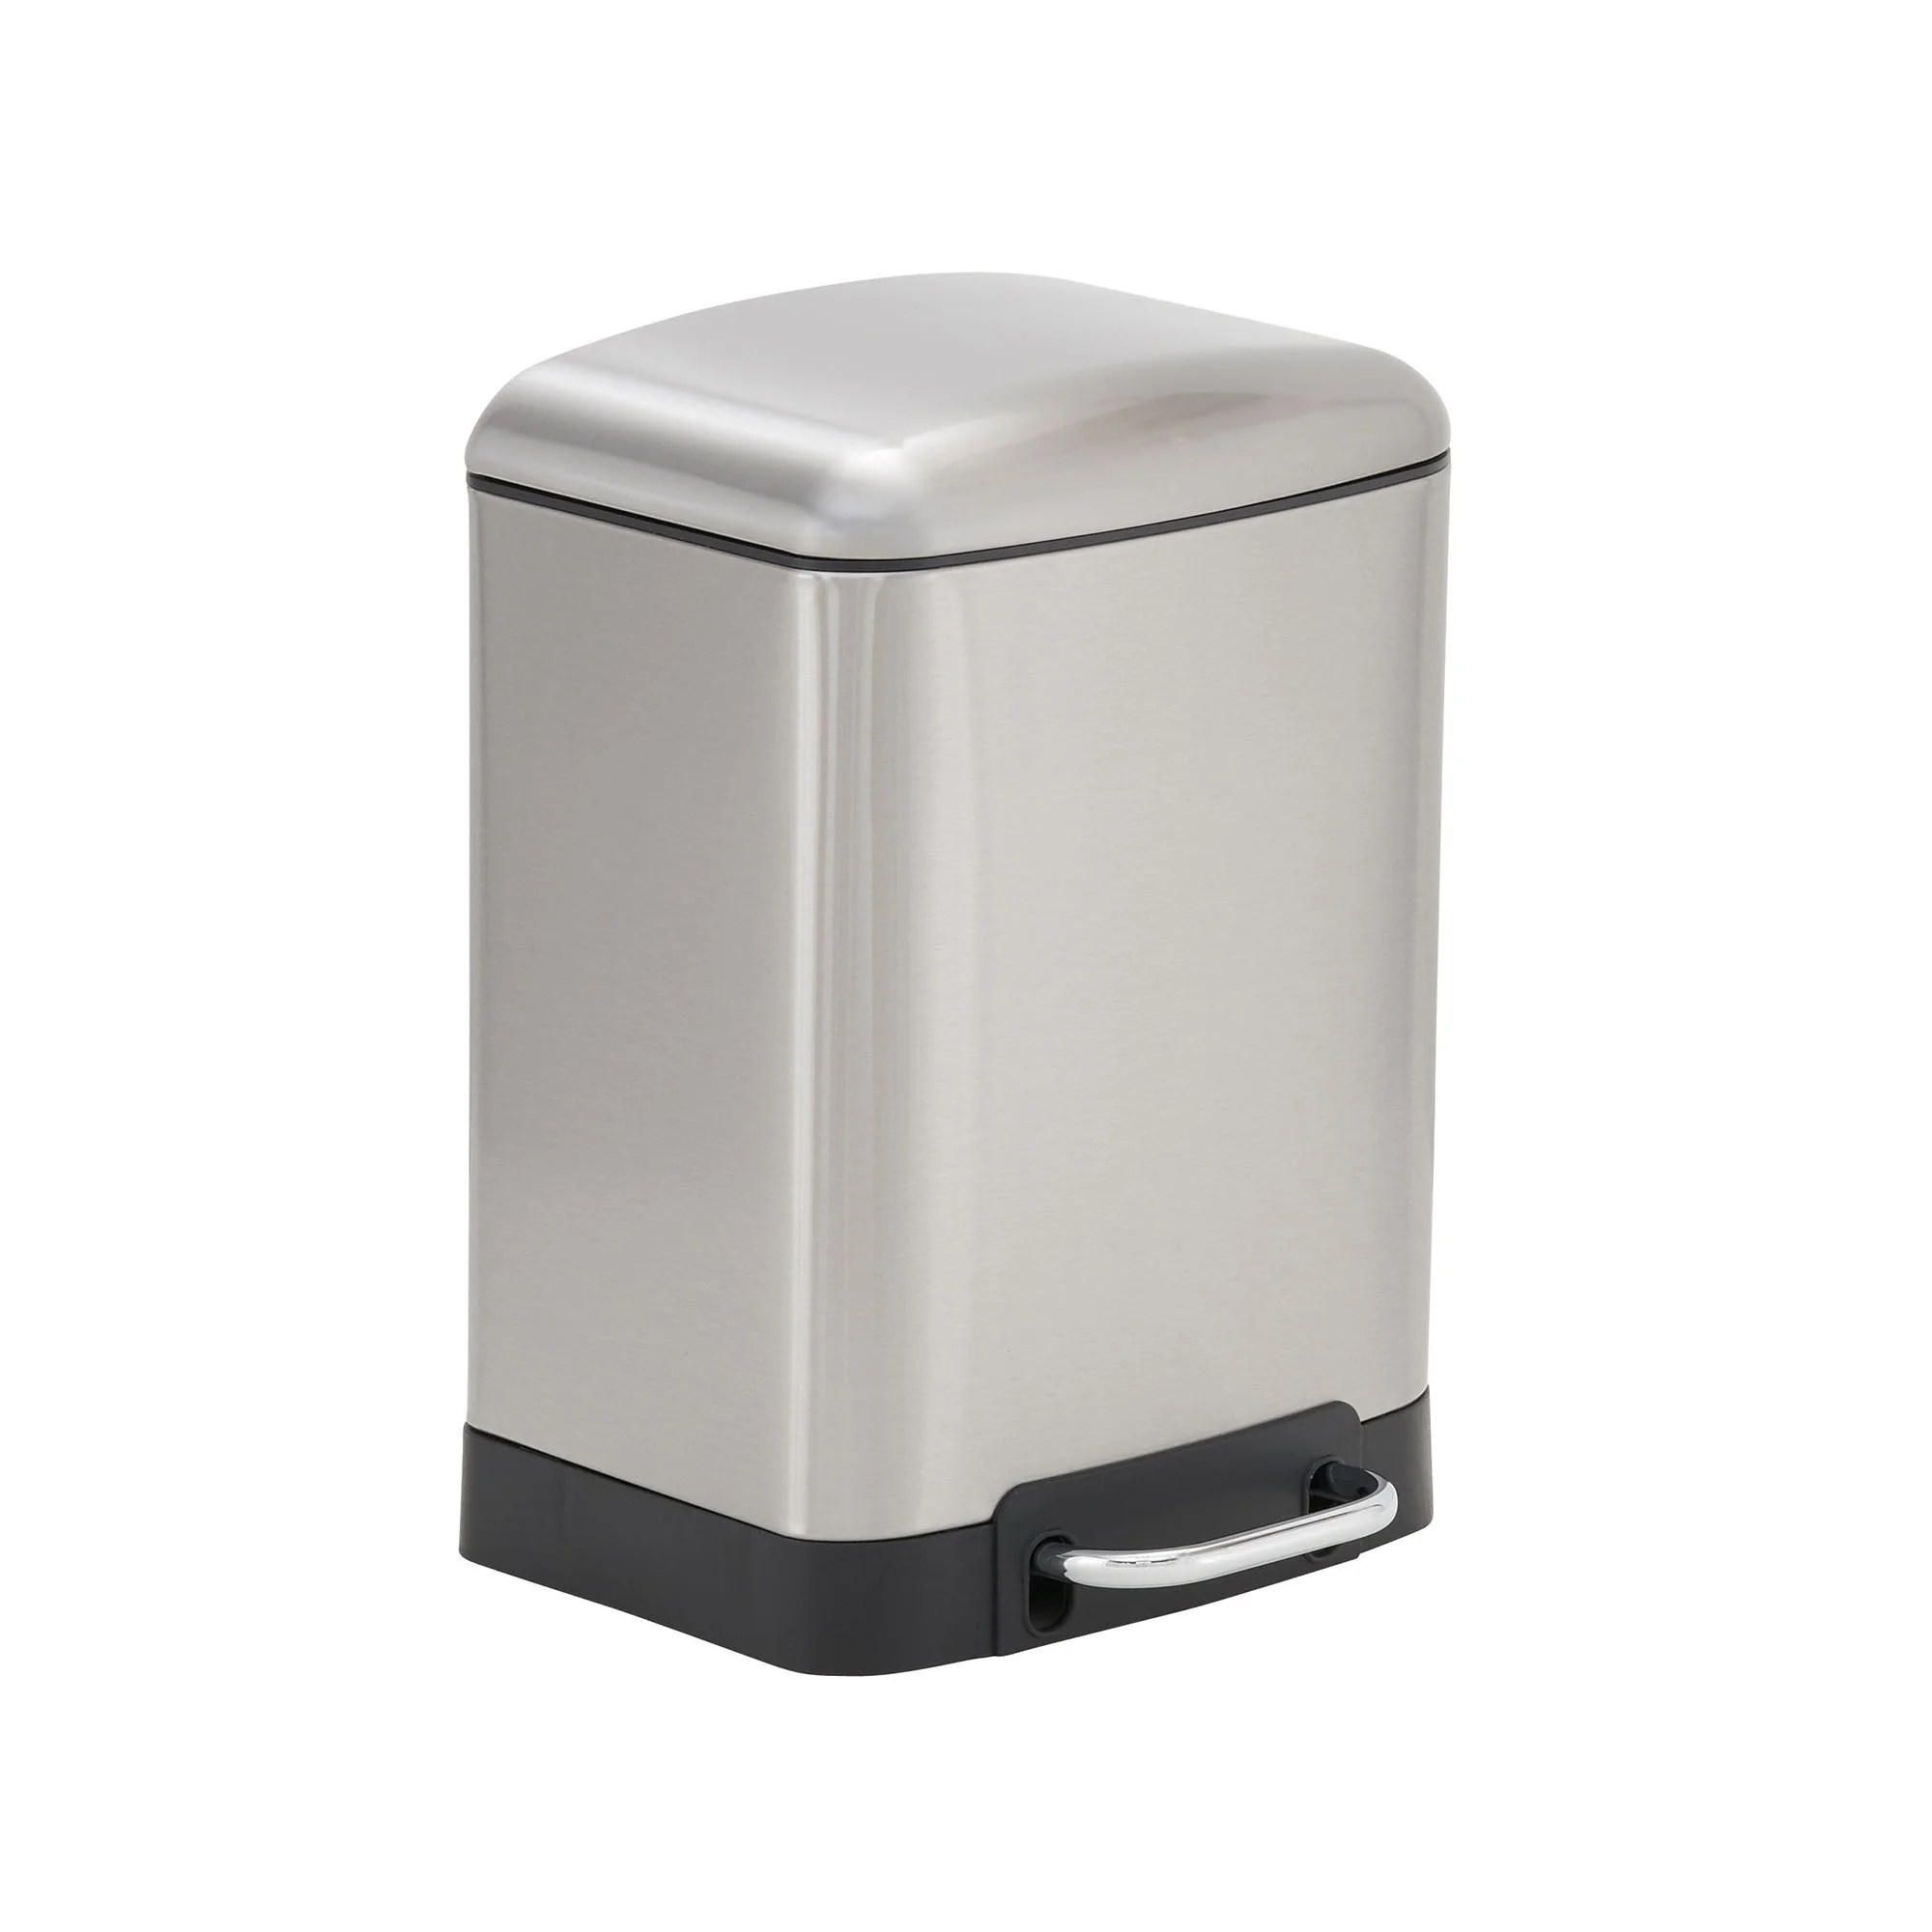 Rectangular Bin Design Trend 6l Crescent Rectangular Stainless Steel Step Trash Can Bin With Black Band